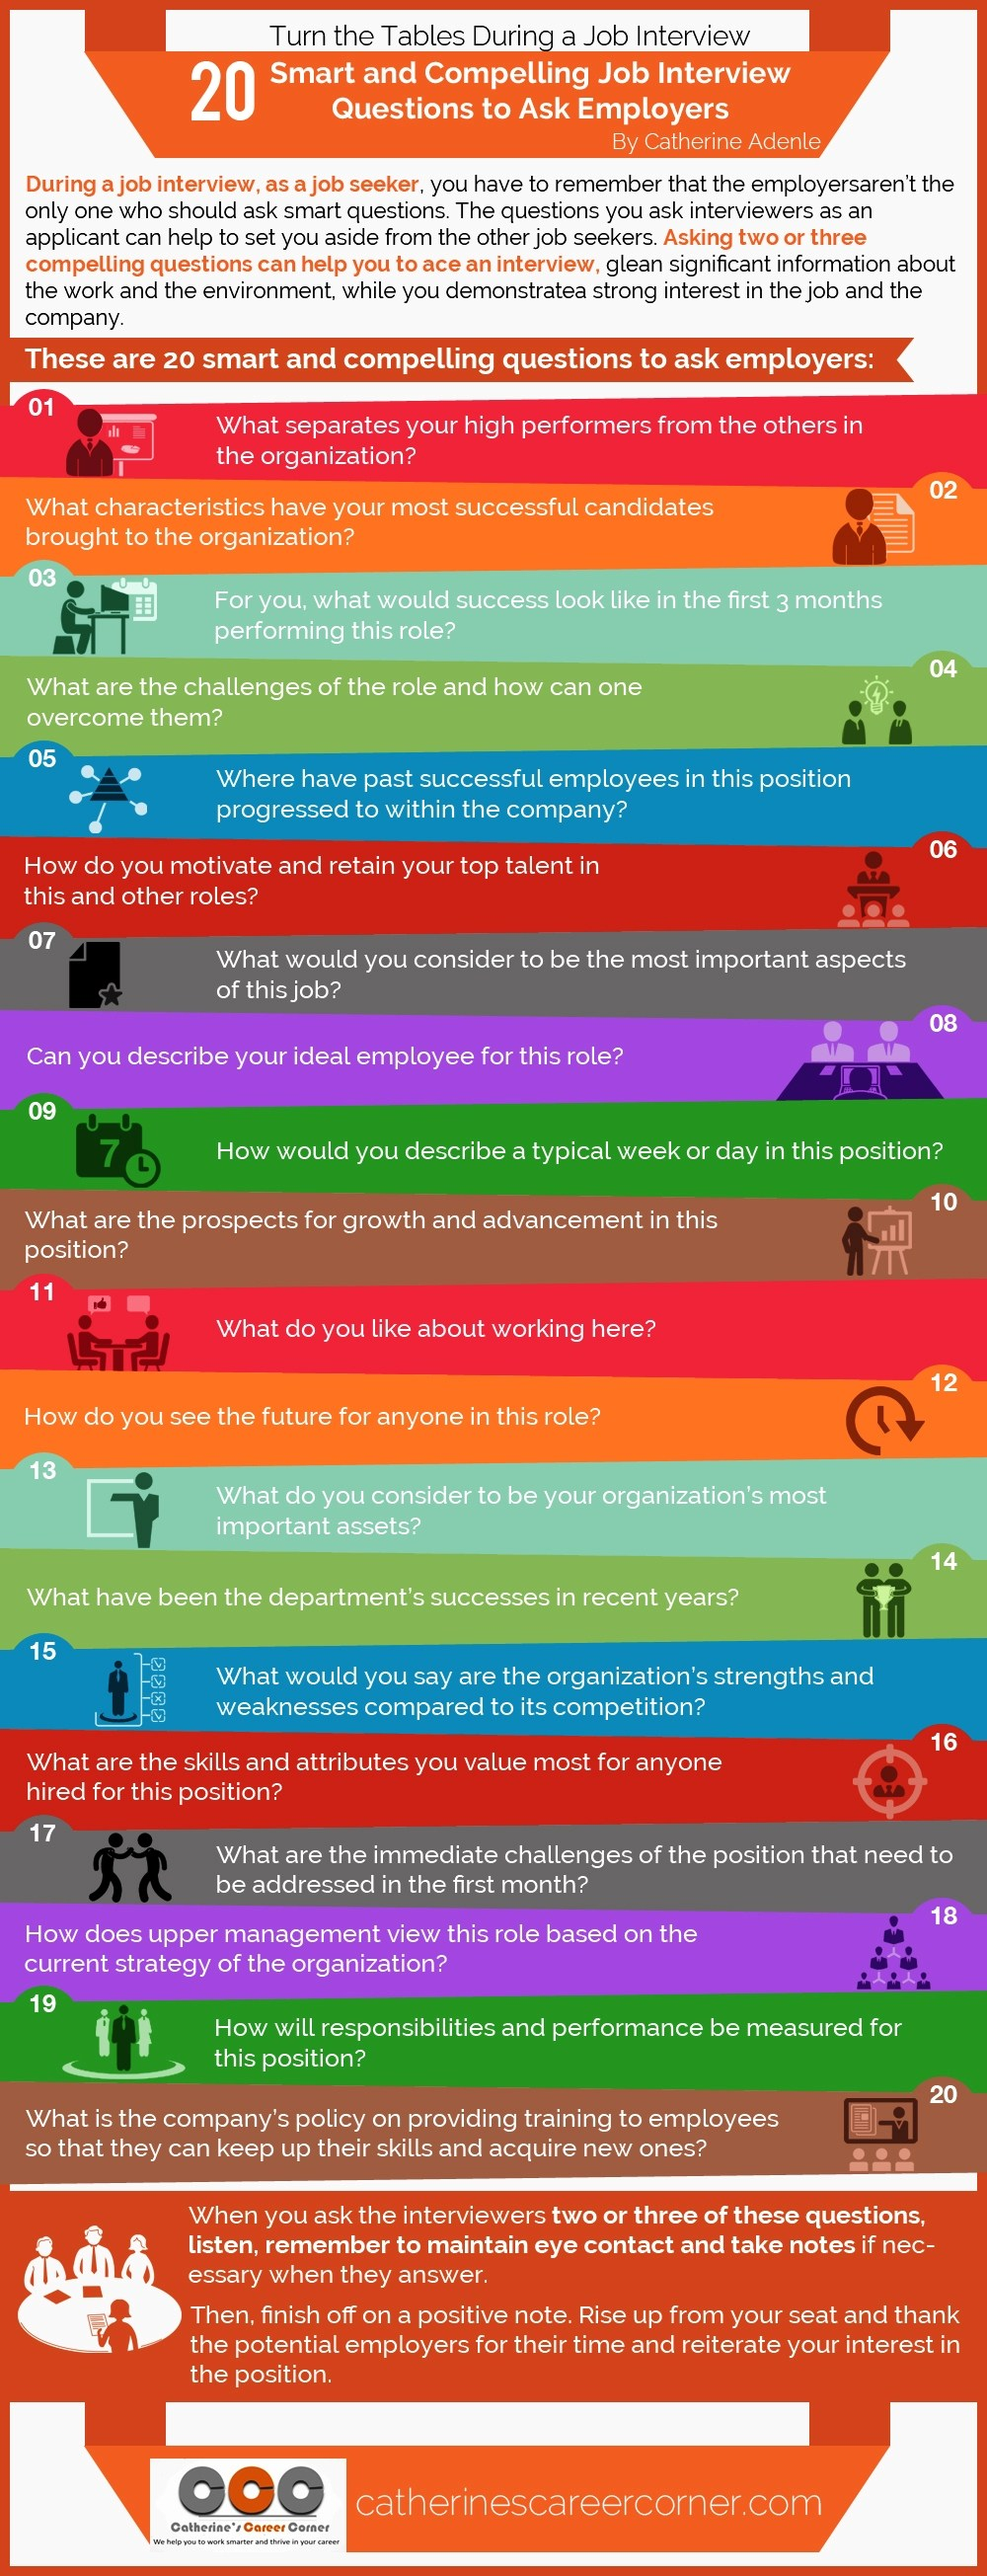 20-Smart-and-Compelling-Questions-to-ask-interviewers11.jpg